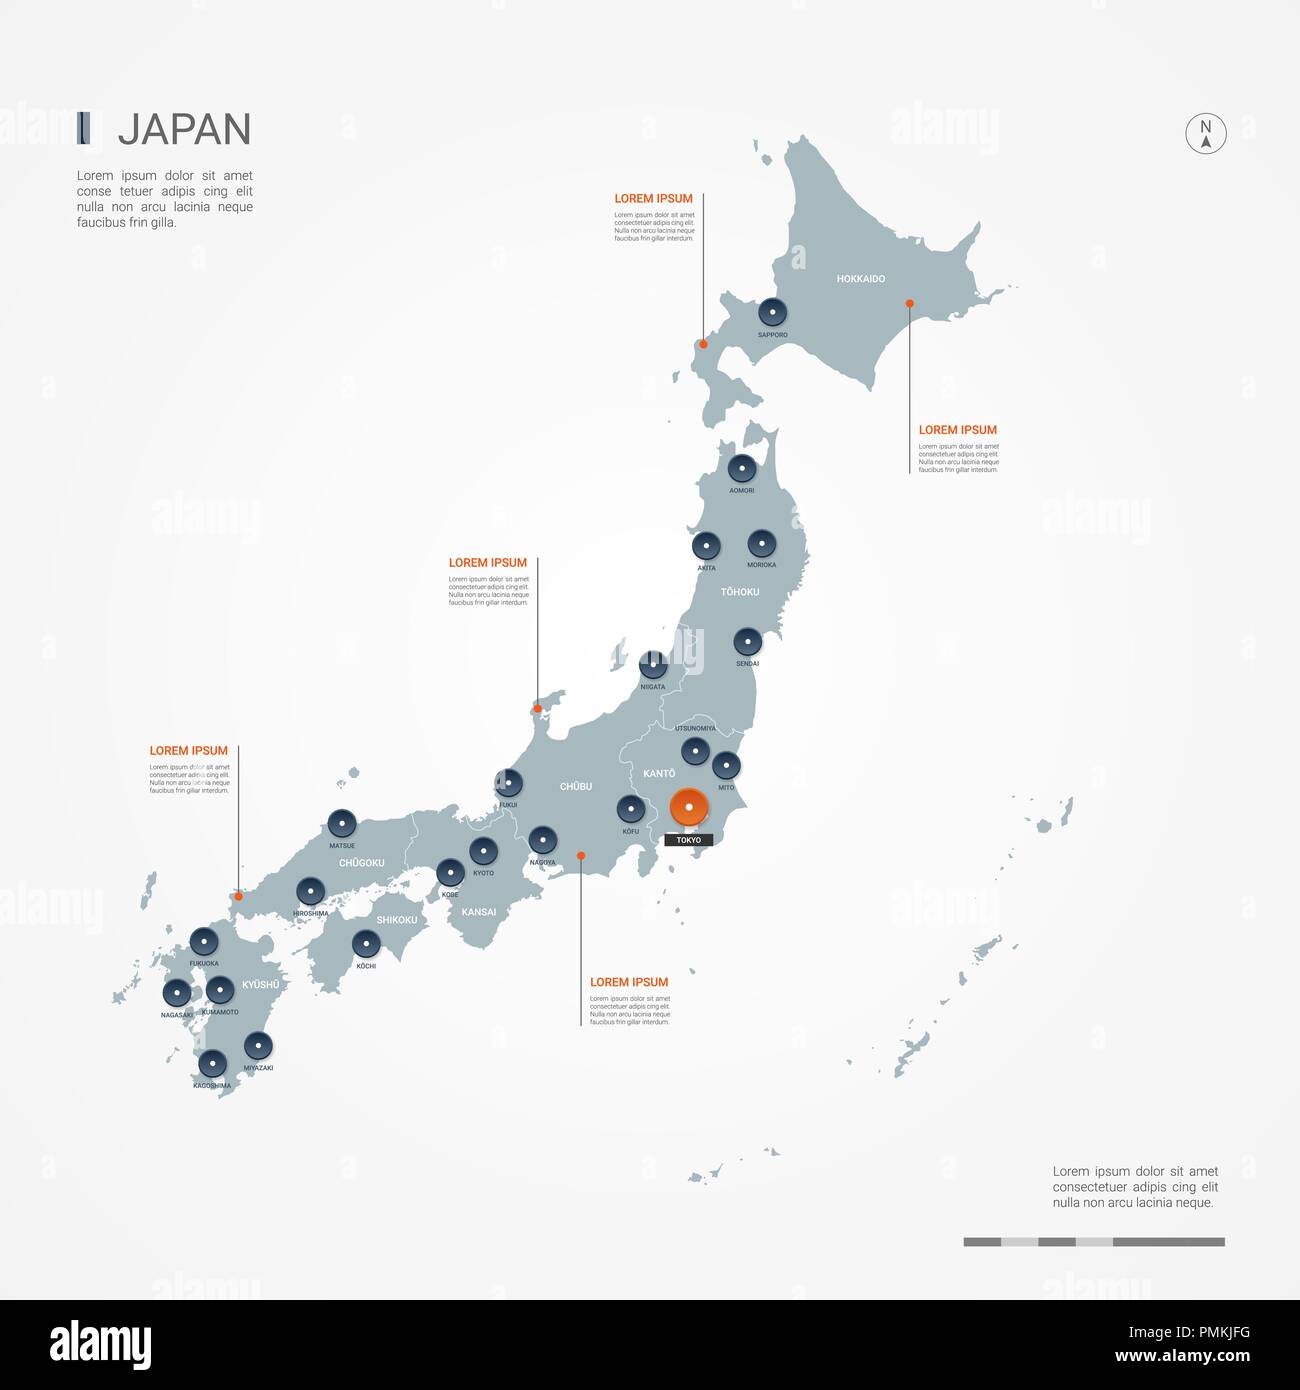 Labled Map Of Japan.Japan Map With Borders Cities Capital And Administrative Divisions